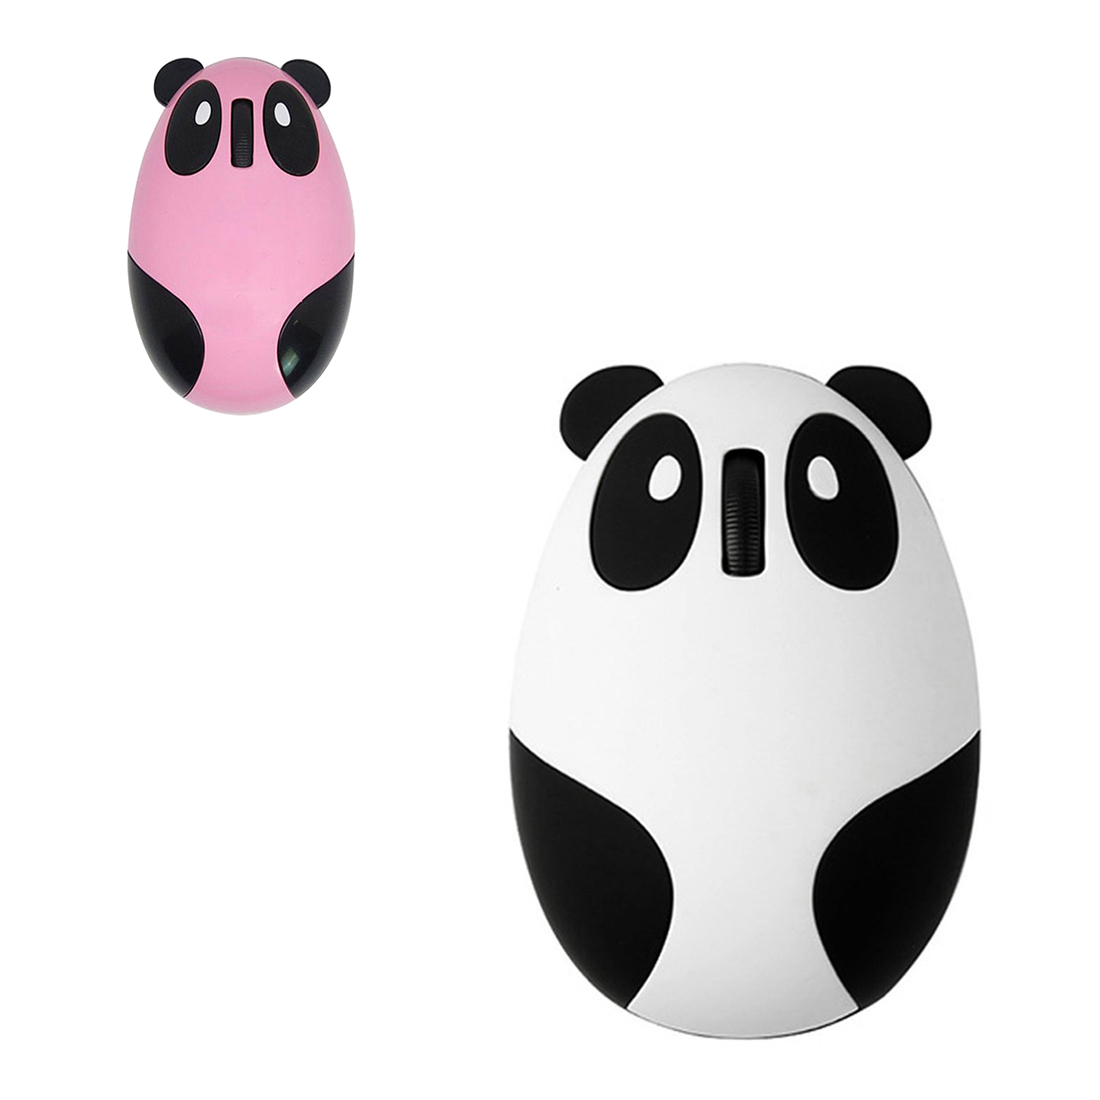 Etmakit High Qunity 2.4GHz Wireless Optical Panda Computer Mouse for Win/Mac/Linux/Andriod/IOS